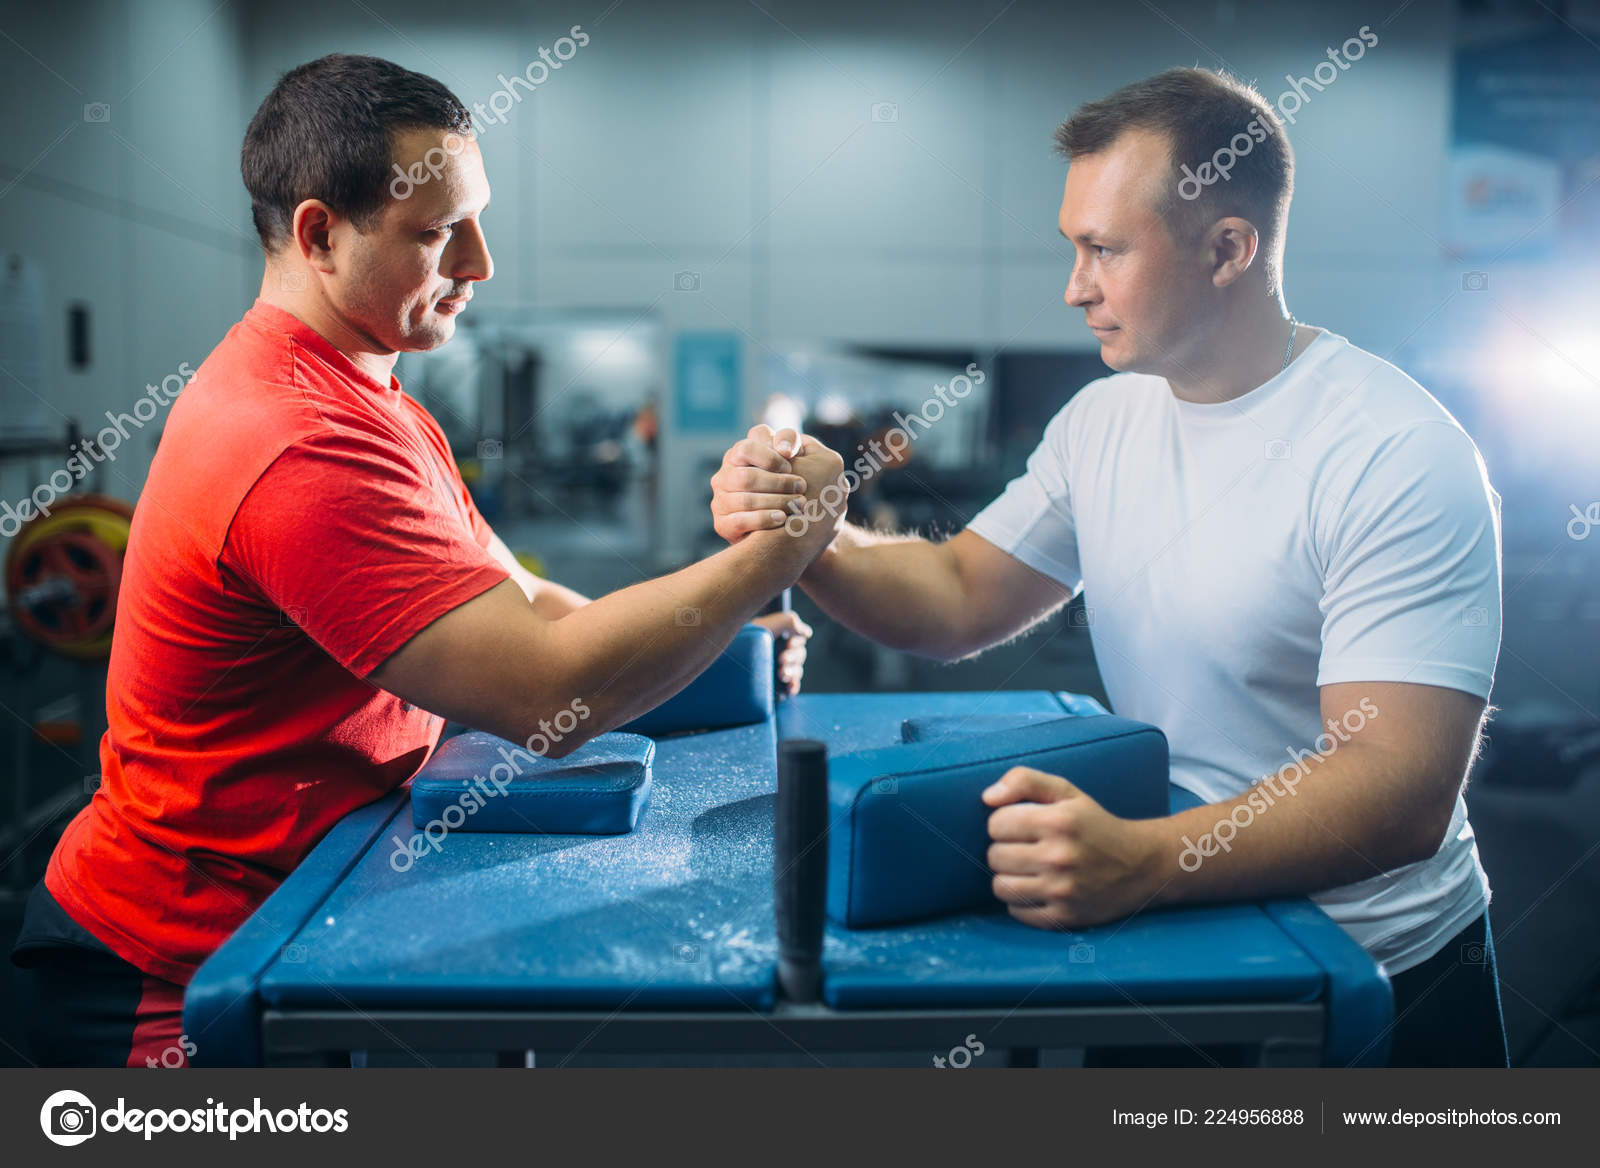 Two Arm Wrestlers Prepares Battle Table Pins Workout Wrestling